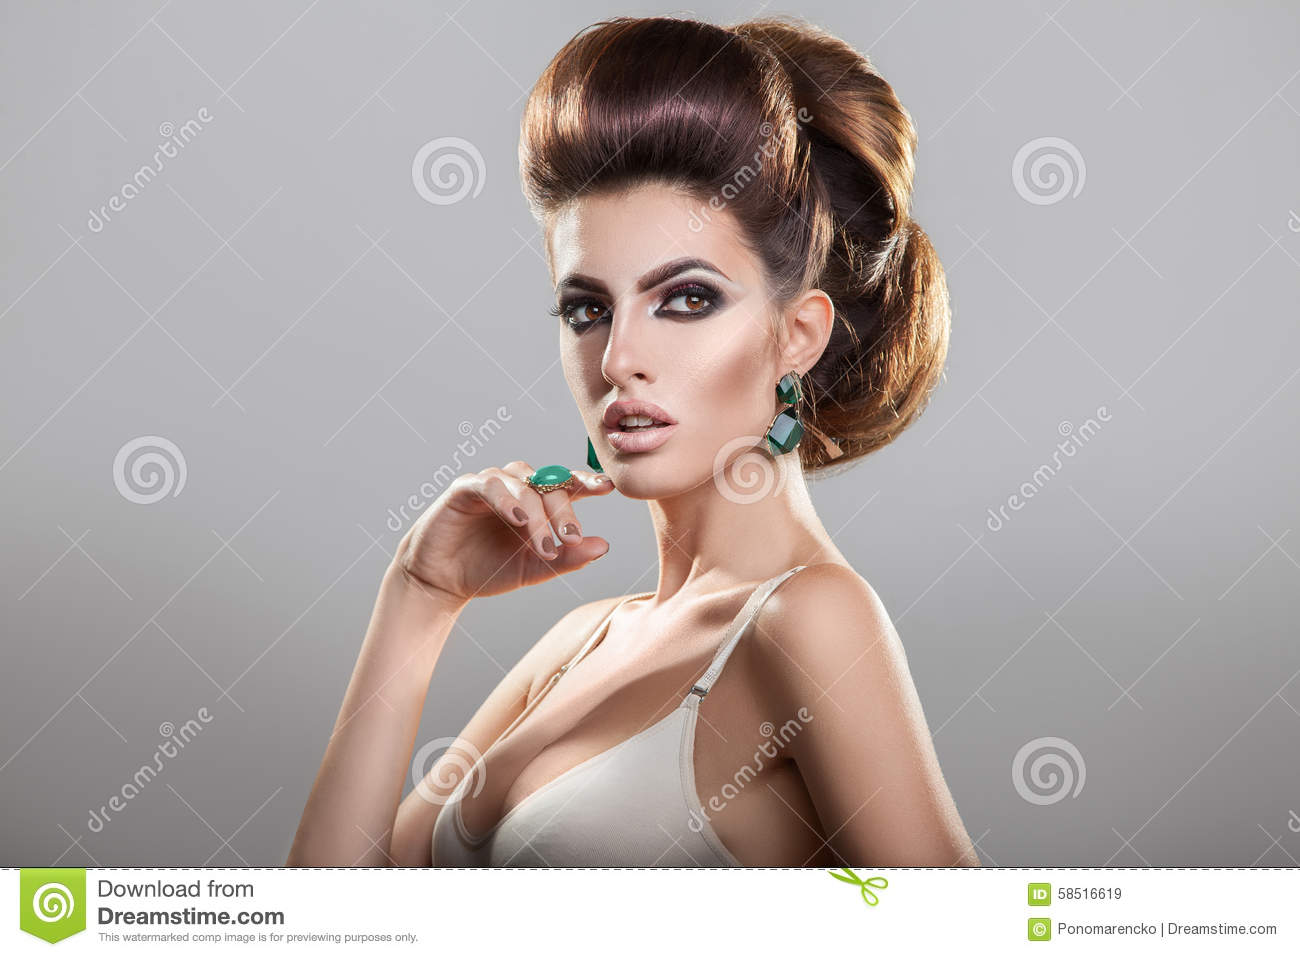 Serious young girl with creative hairstyle looking away